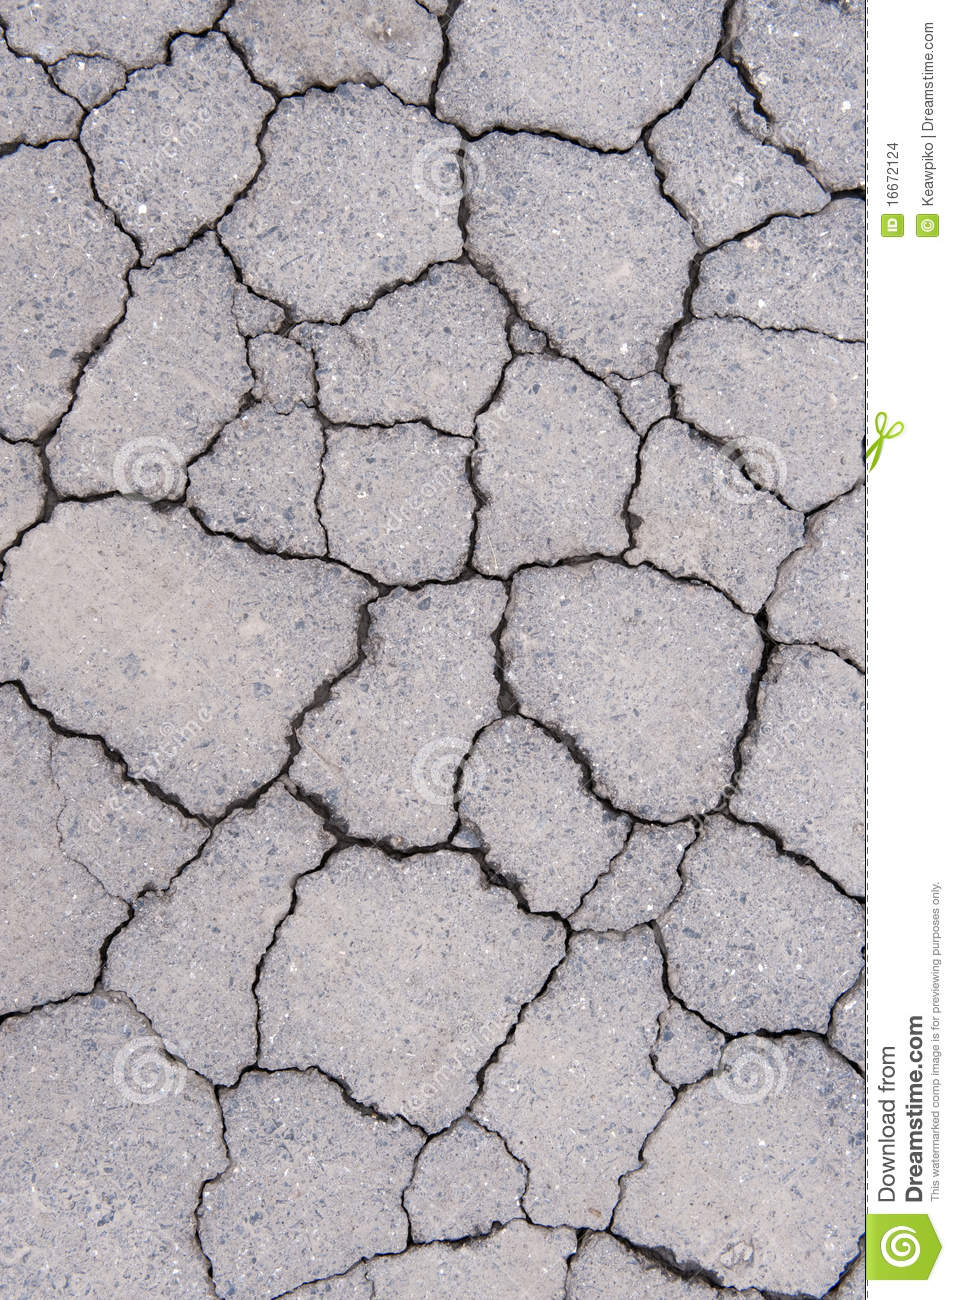 Cracked cement stock photo. Image of home, detail, hole - 16672124